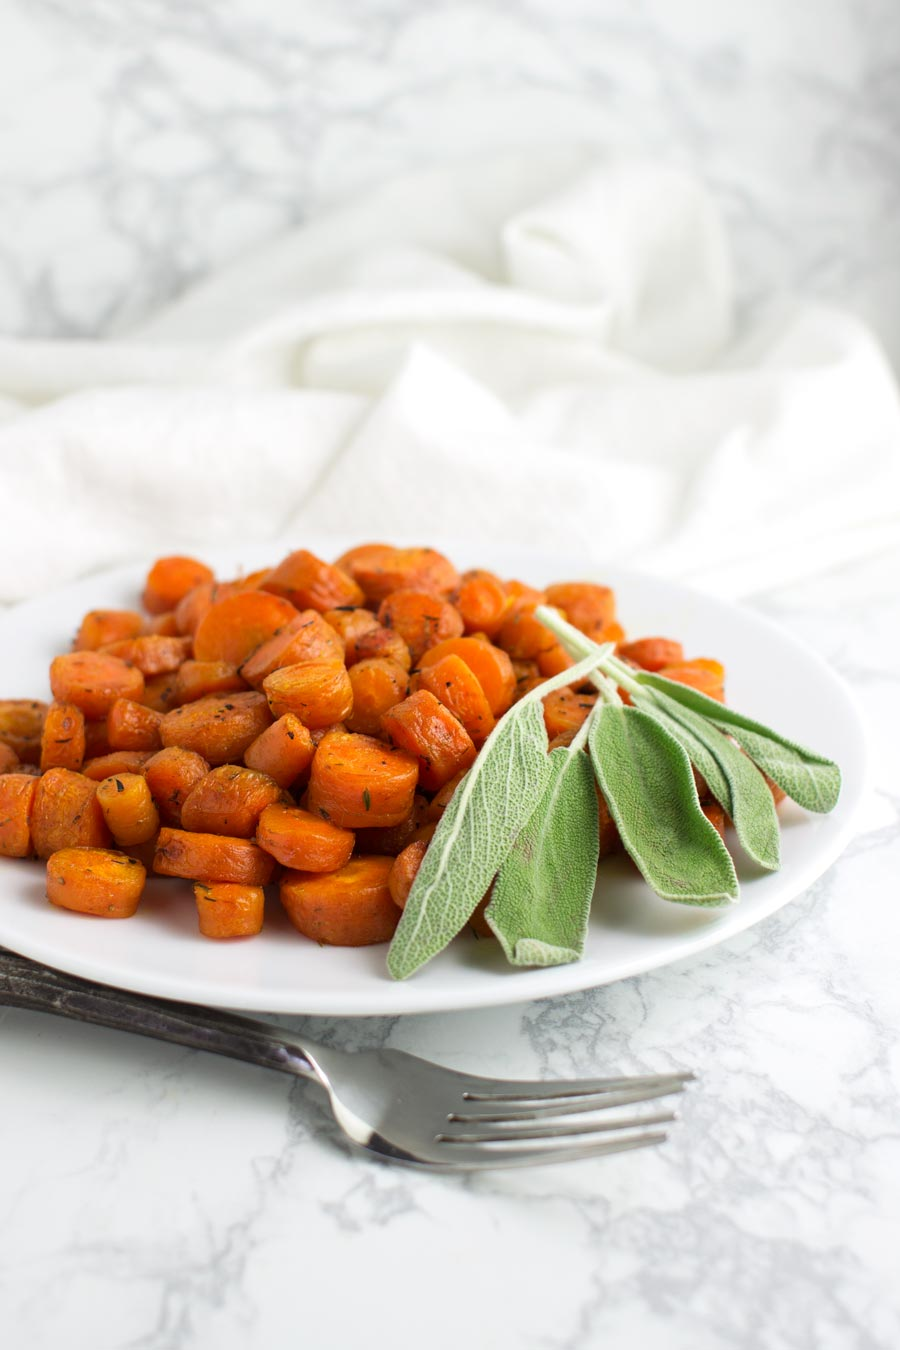 Roasted Carrots recipe from acleanplate.com #aip #paleo #autoimmuneprotocol